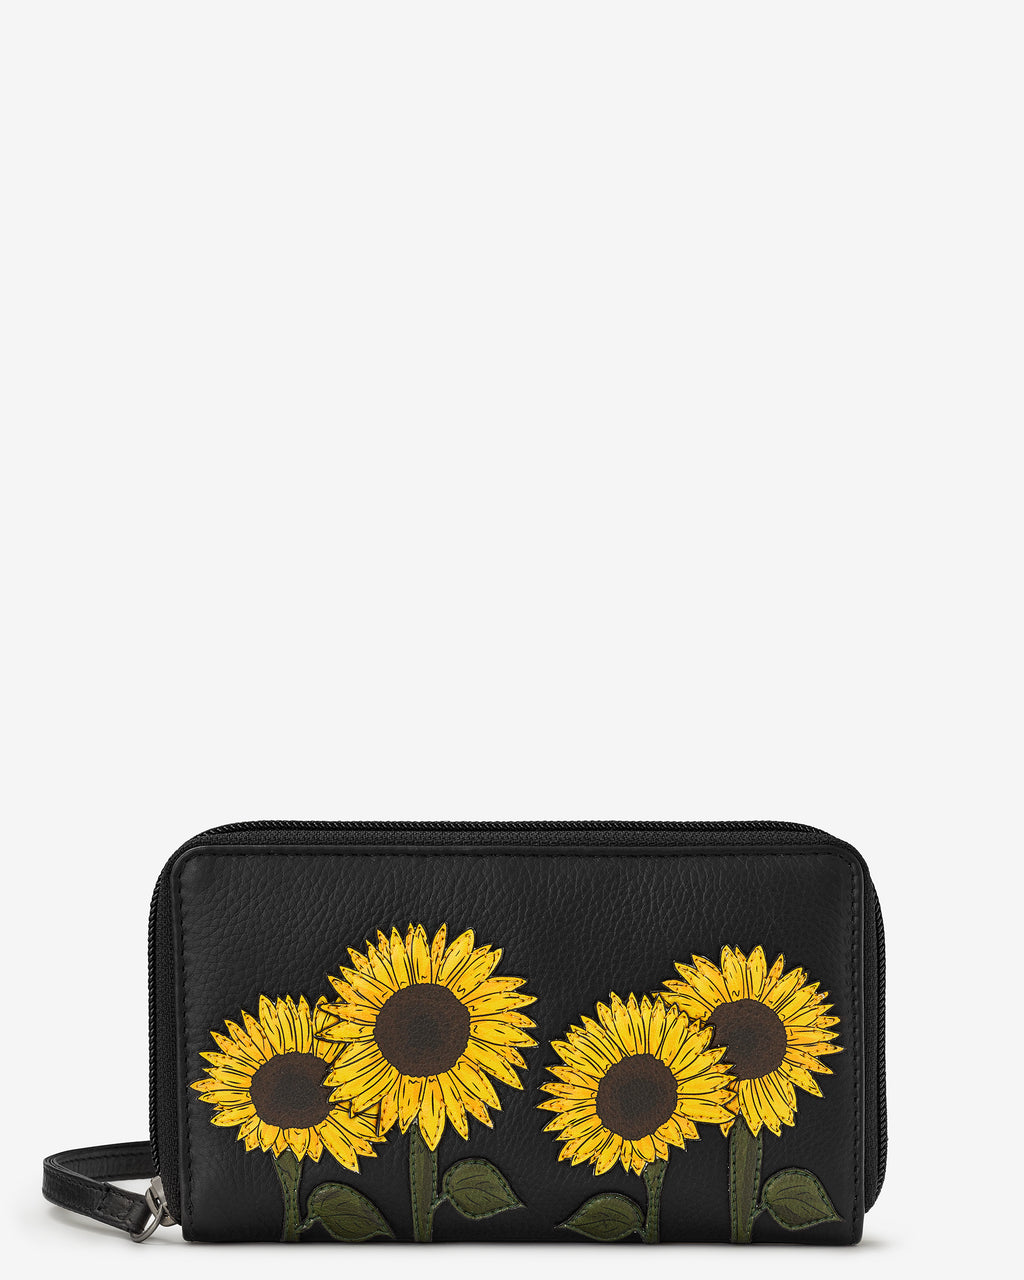 Sunflowers Zip Round Leather Purse With Strap